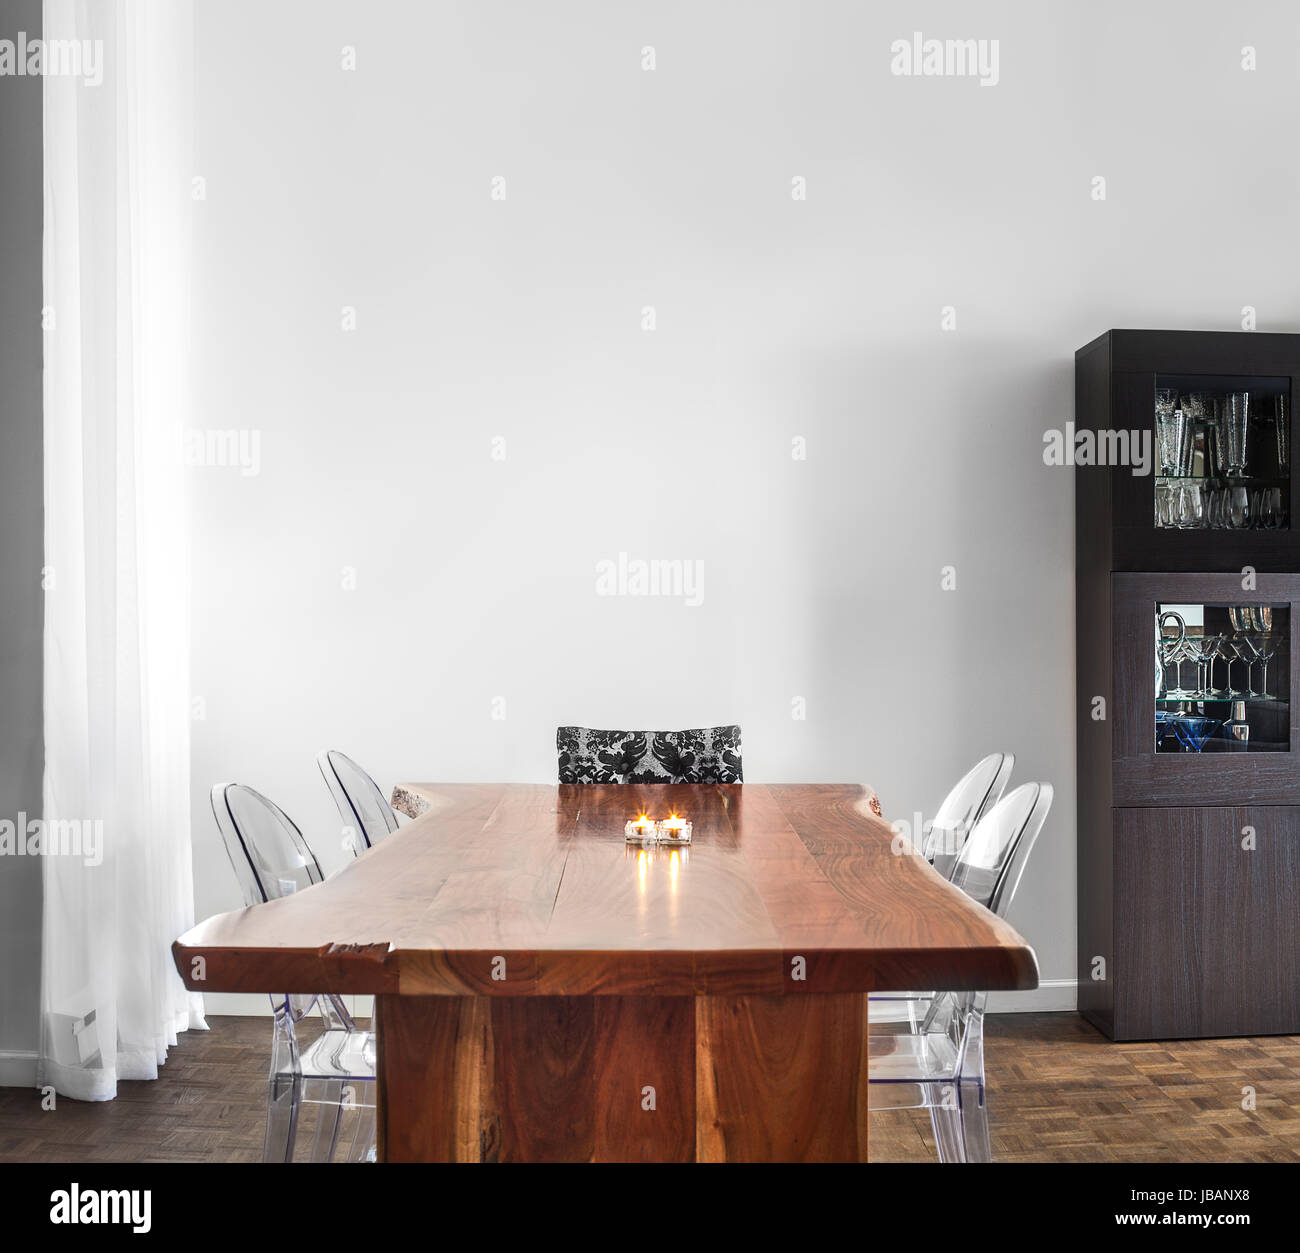 Plexiglass Chairs Plexiglass Chairs Stock Photos Plexiglass Chairs Stock Images